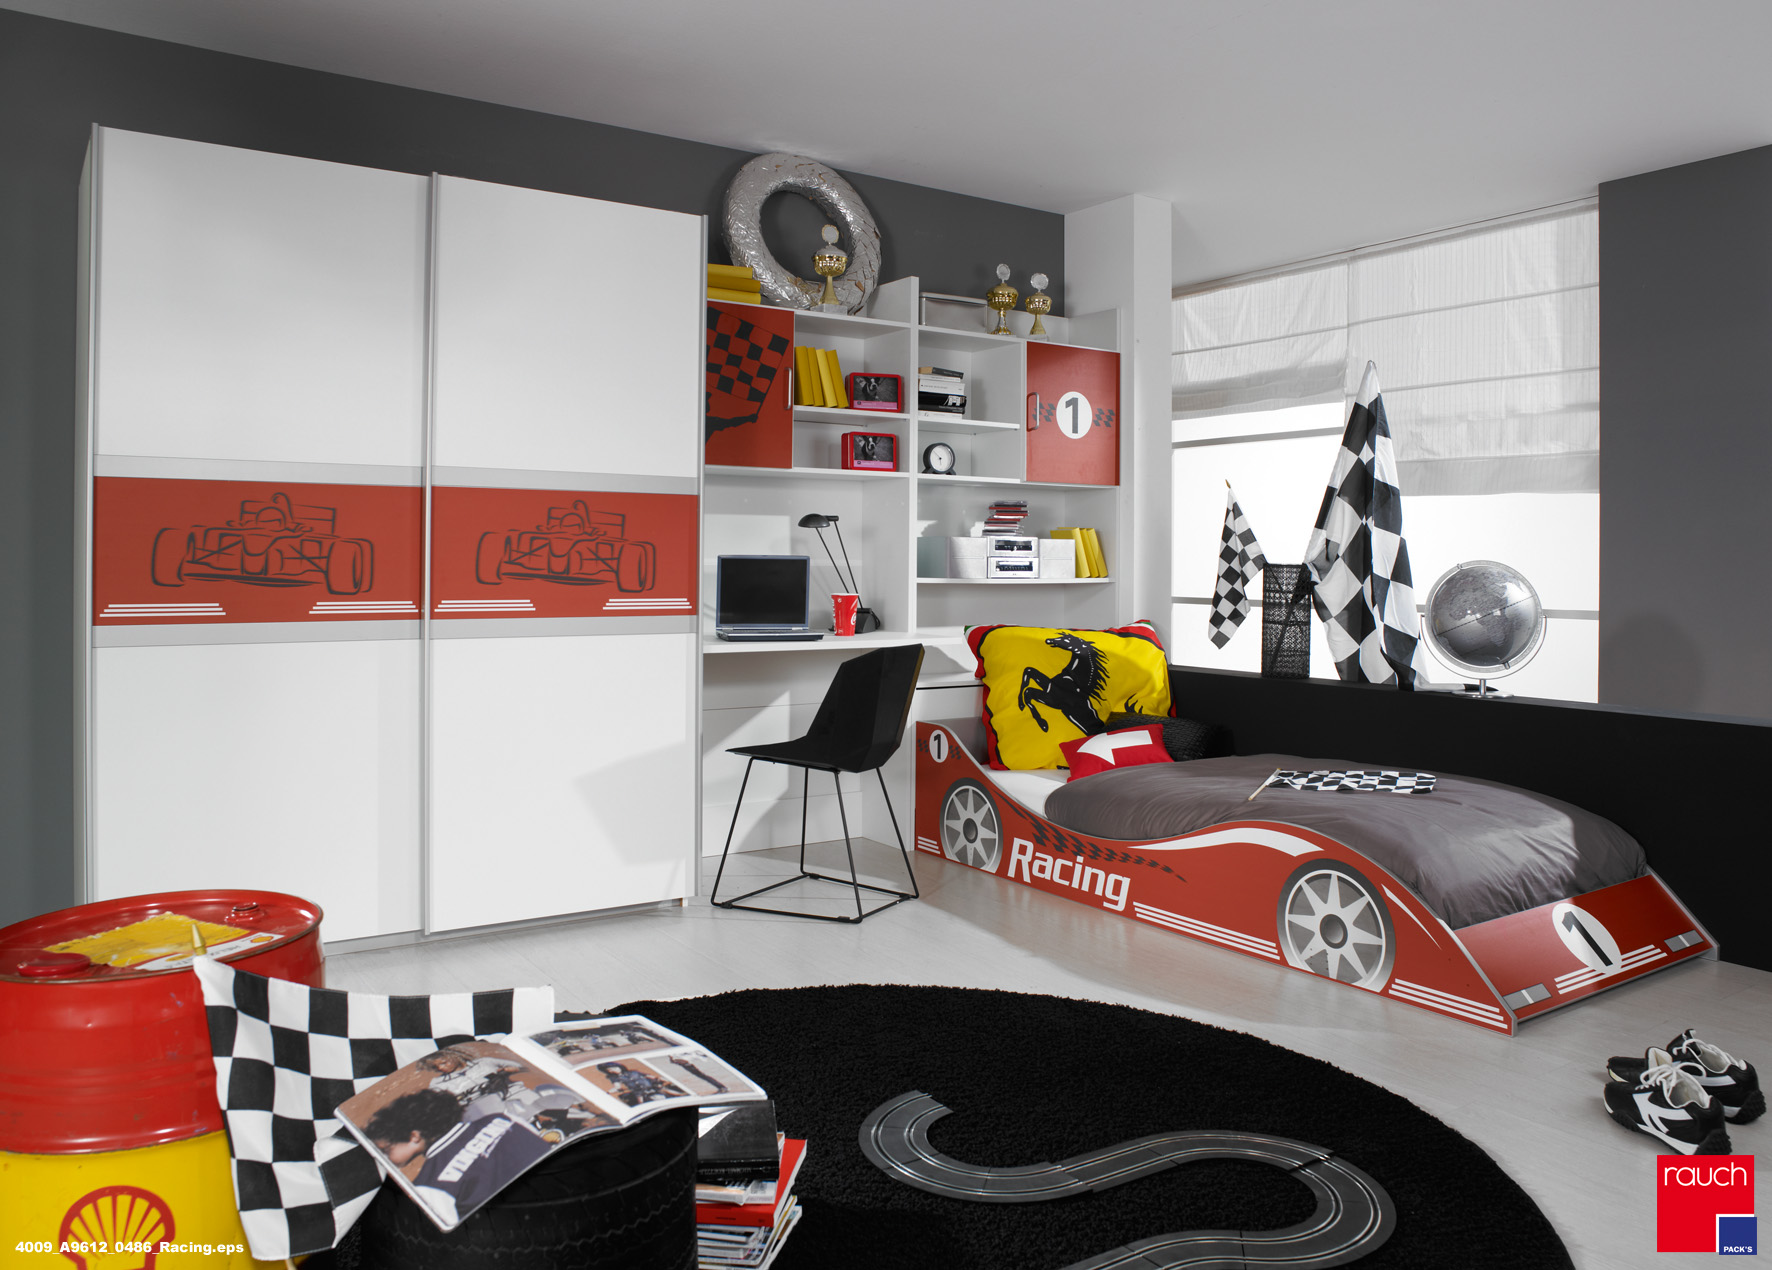 Rauch racing kinderzimmer jugendzimmer autobett schrank for Kinderzimmer auto design